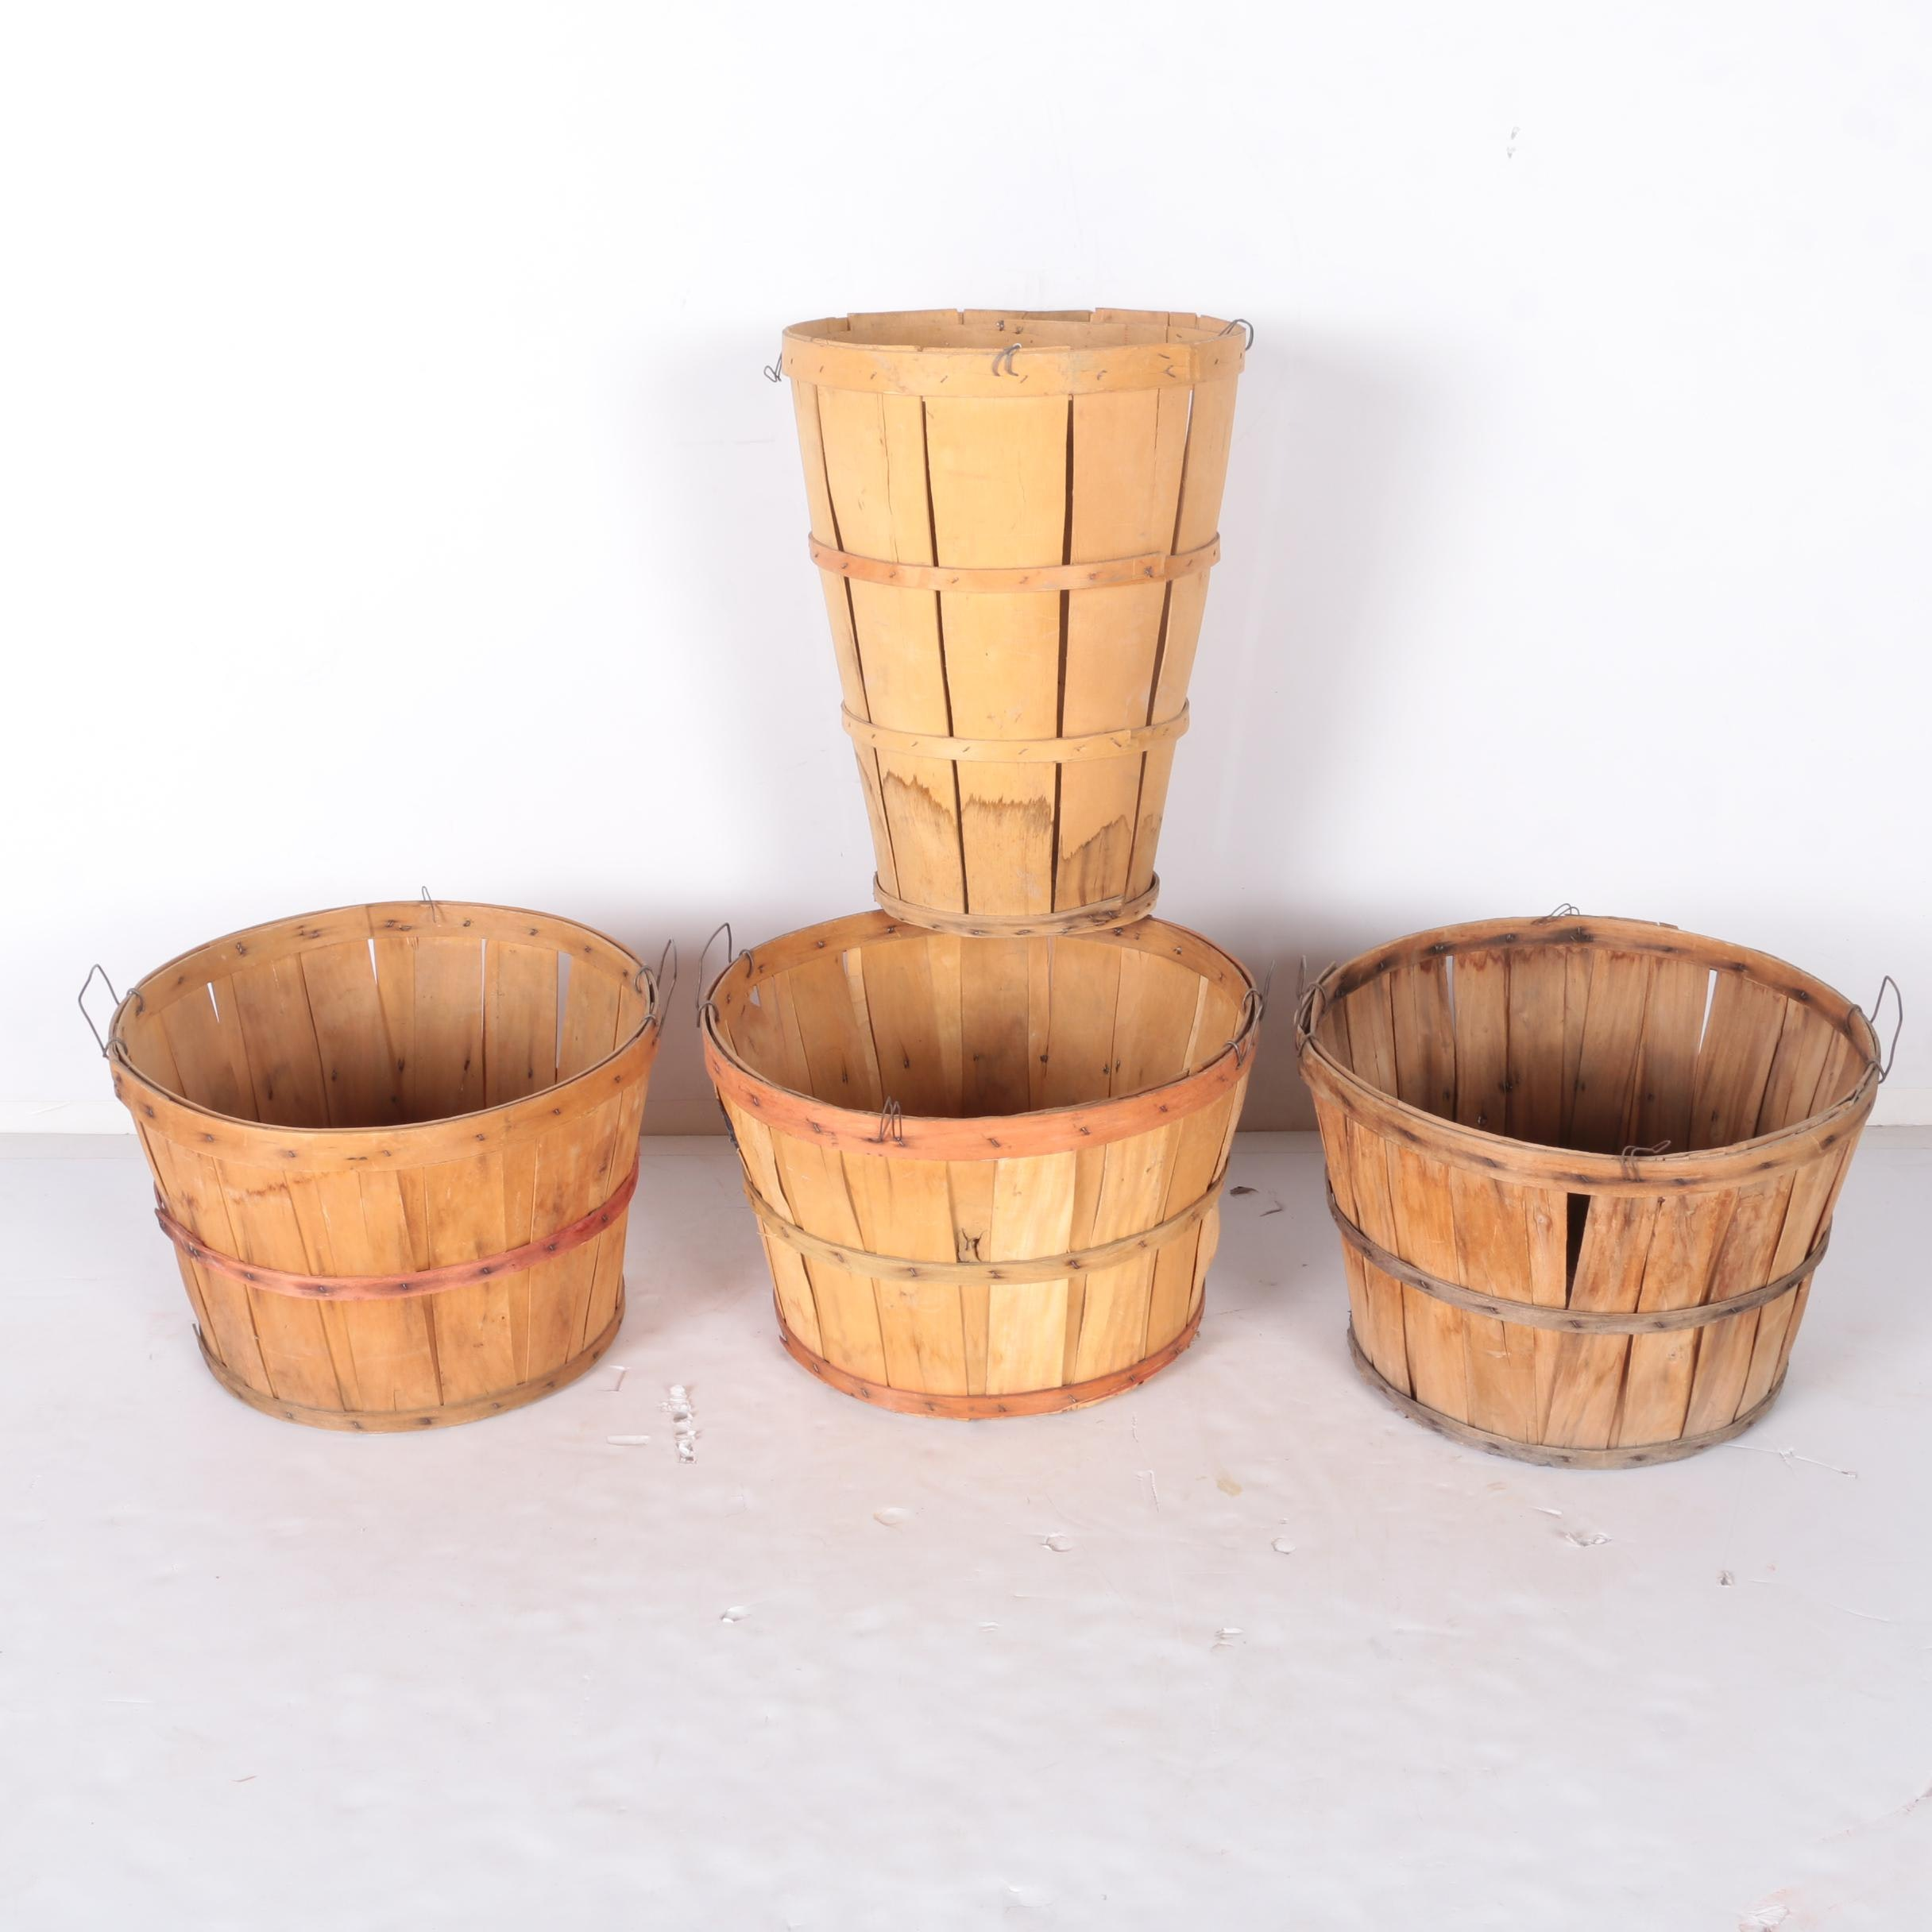 Wooden Bushel and Hamper Bushel Baskets